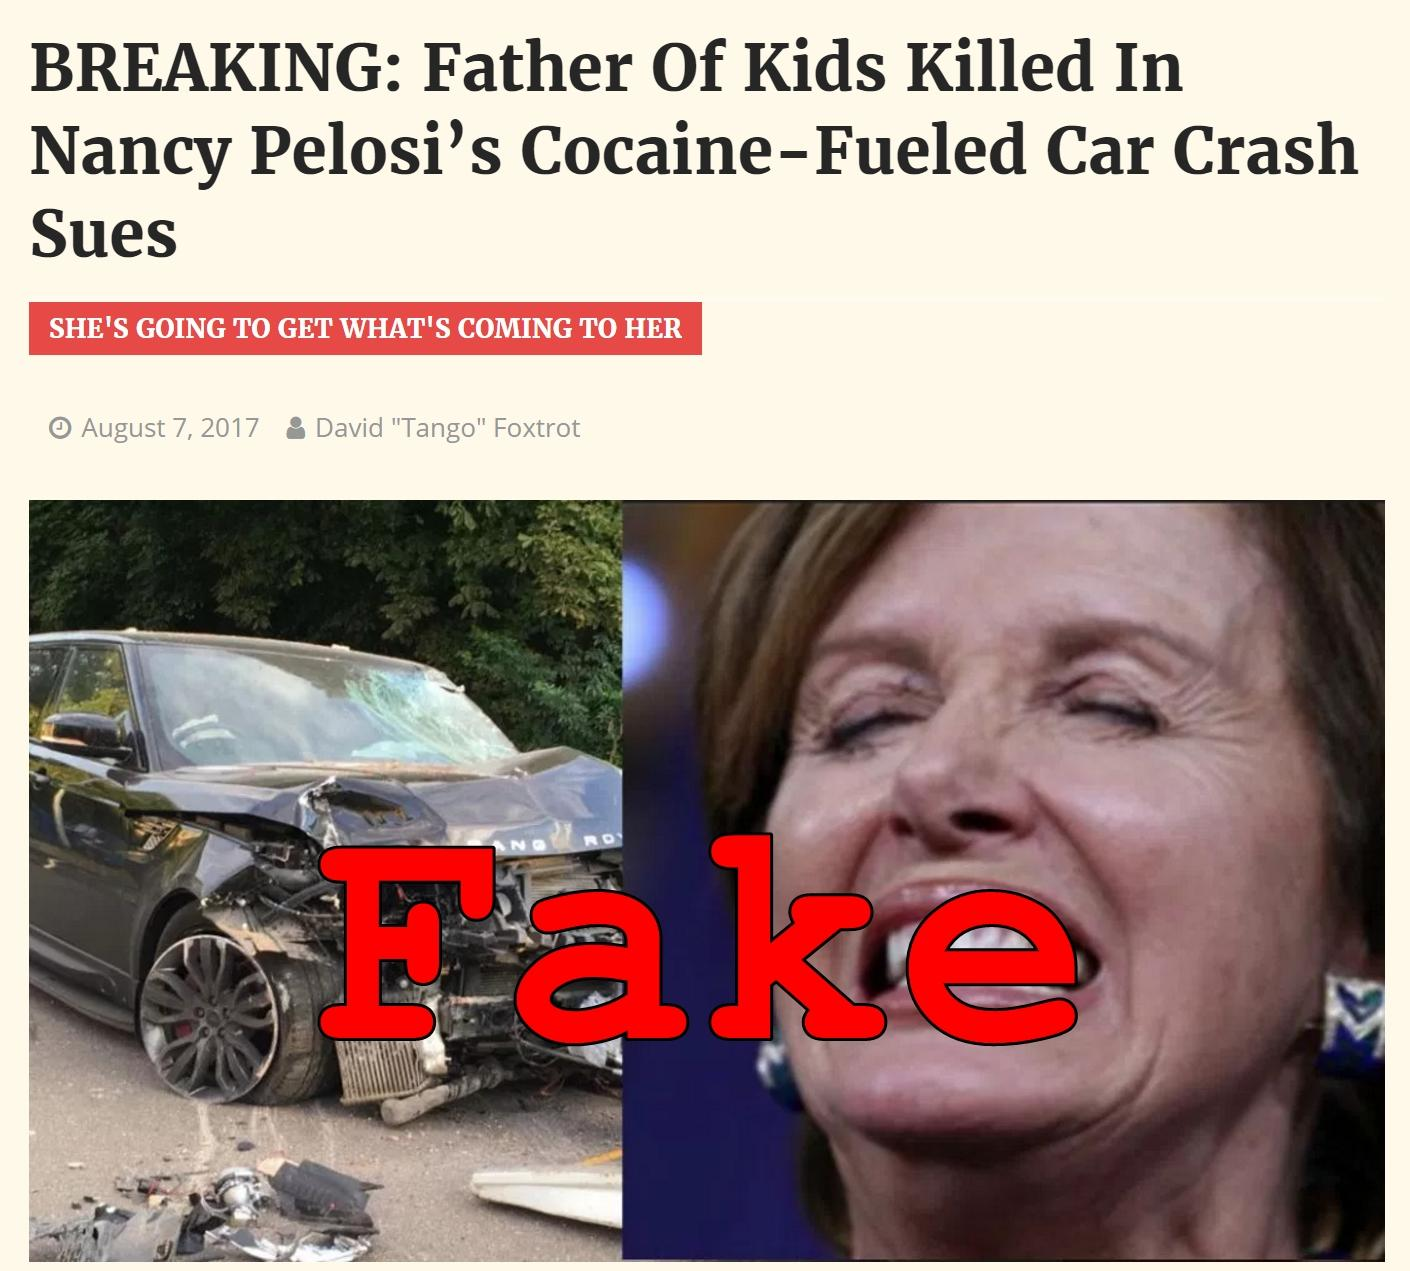 Fake News: Nancy Pelosi NOT In Cocaine Or Alcohol Fueled Car Crash